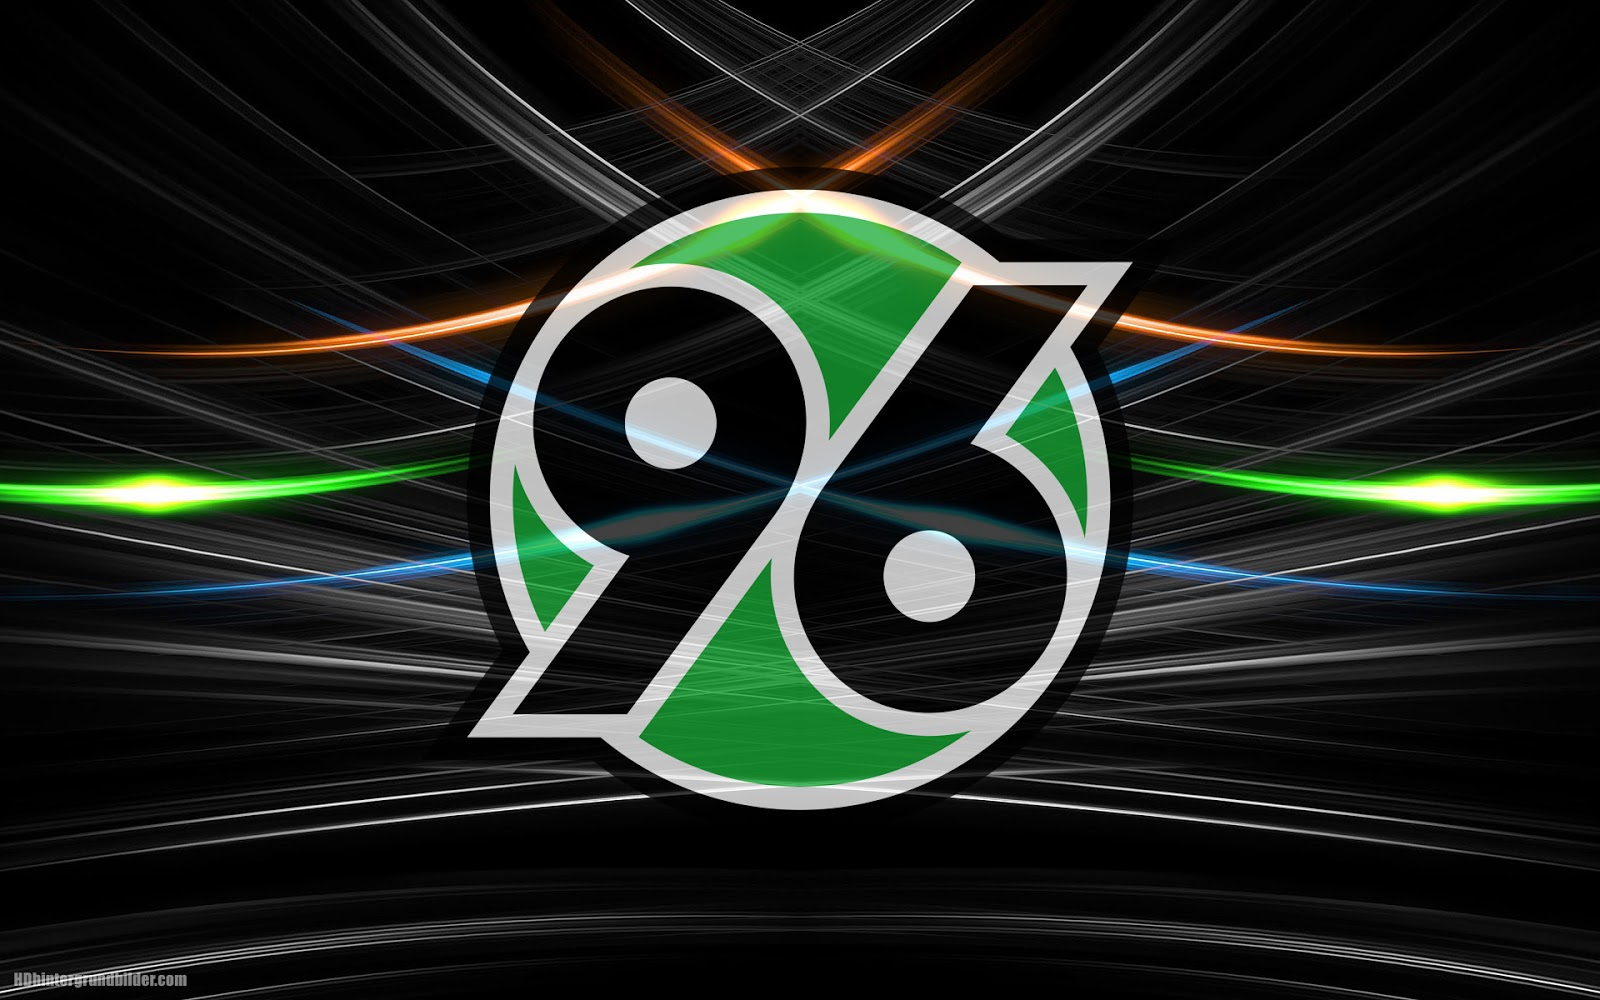 Abstrakte Bilder In Lila Hannover 96 Wallpapers | Hd Hintergrundbilder